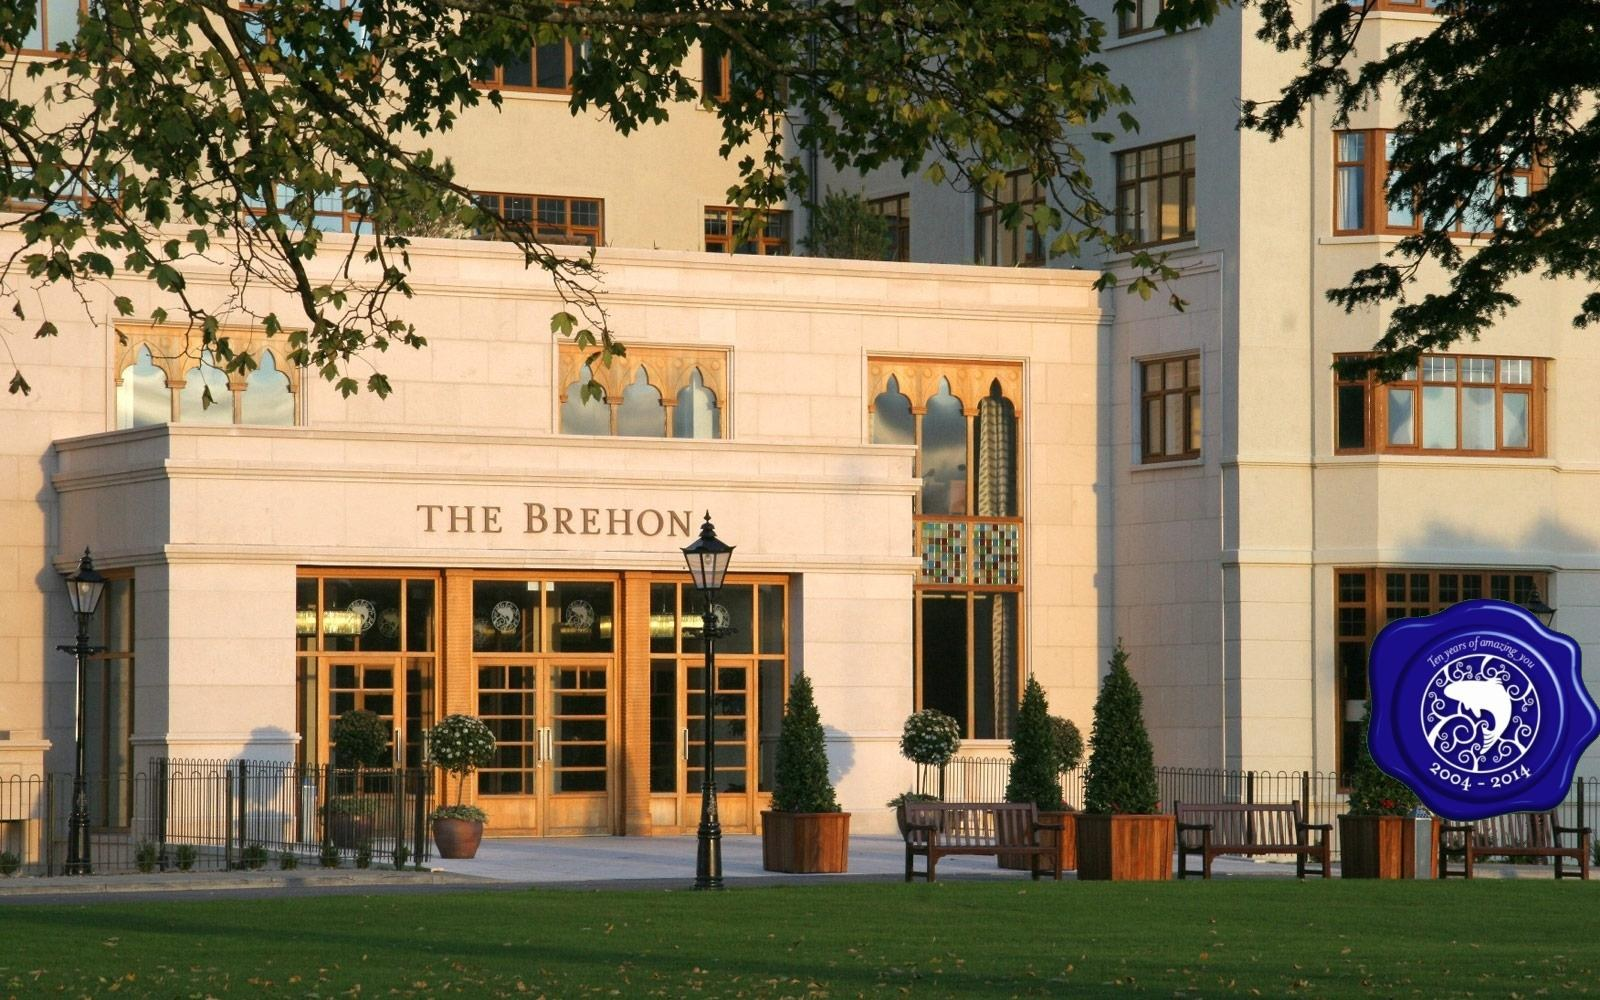 The-Brehon-Hotel-Killarney-Co.-Kerry-Ireland